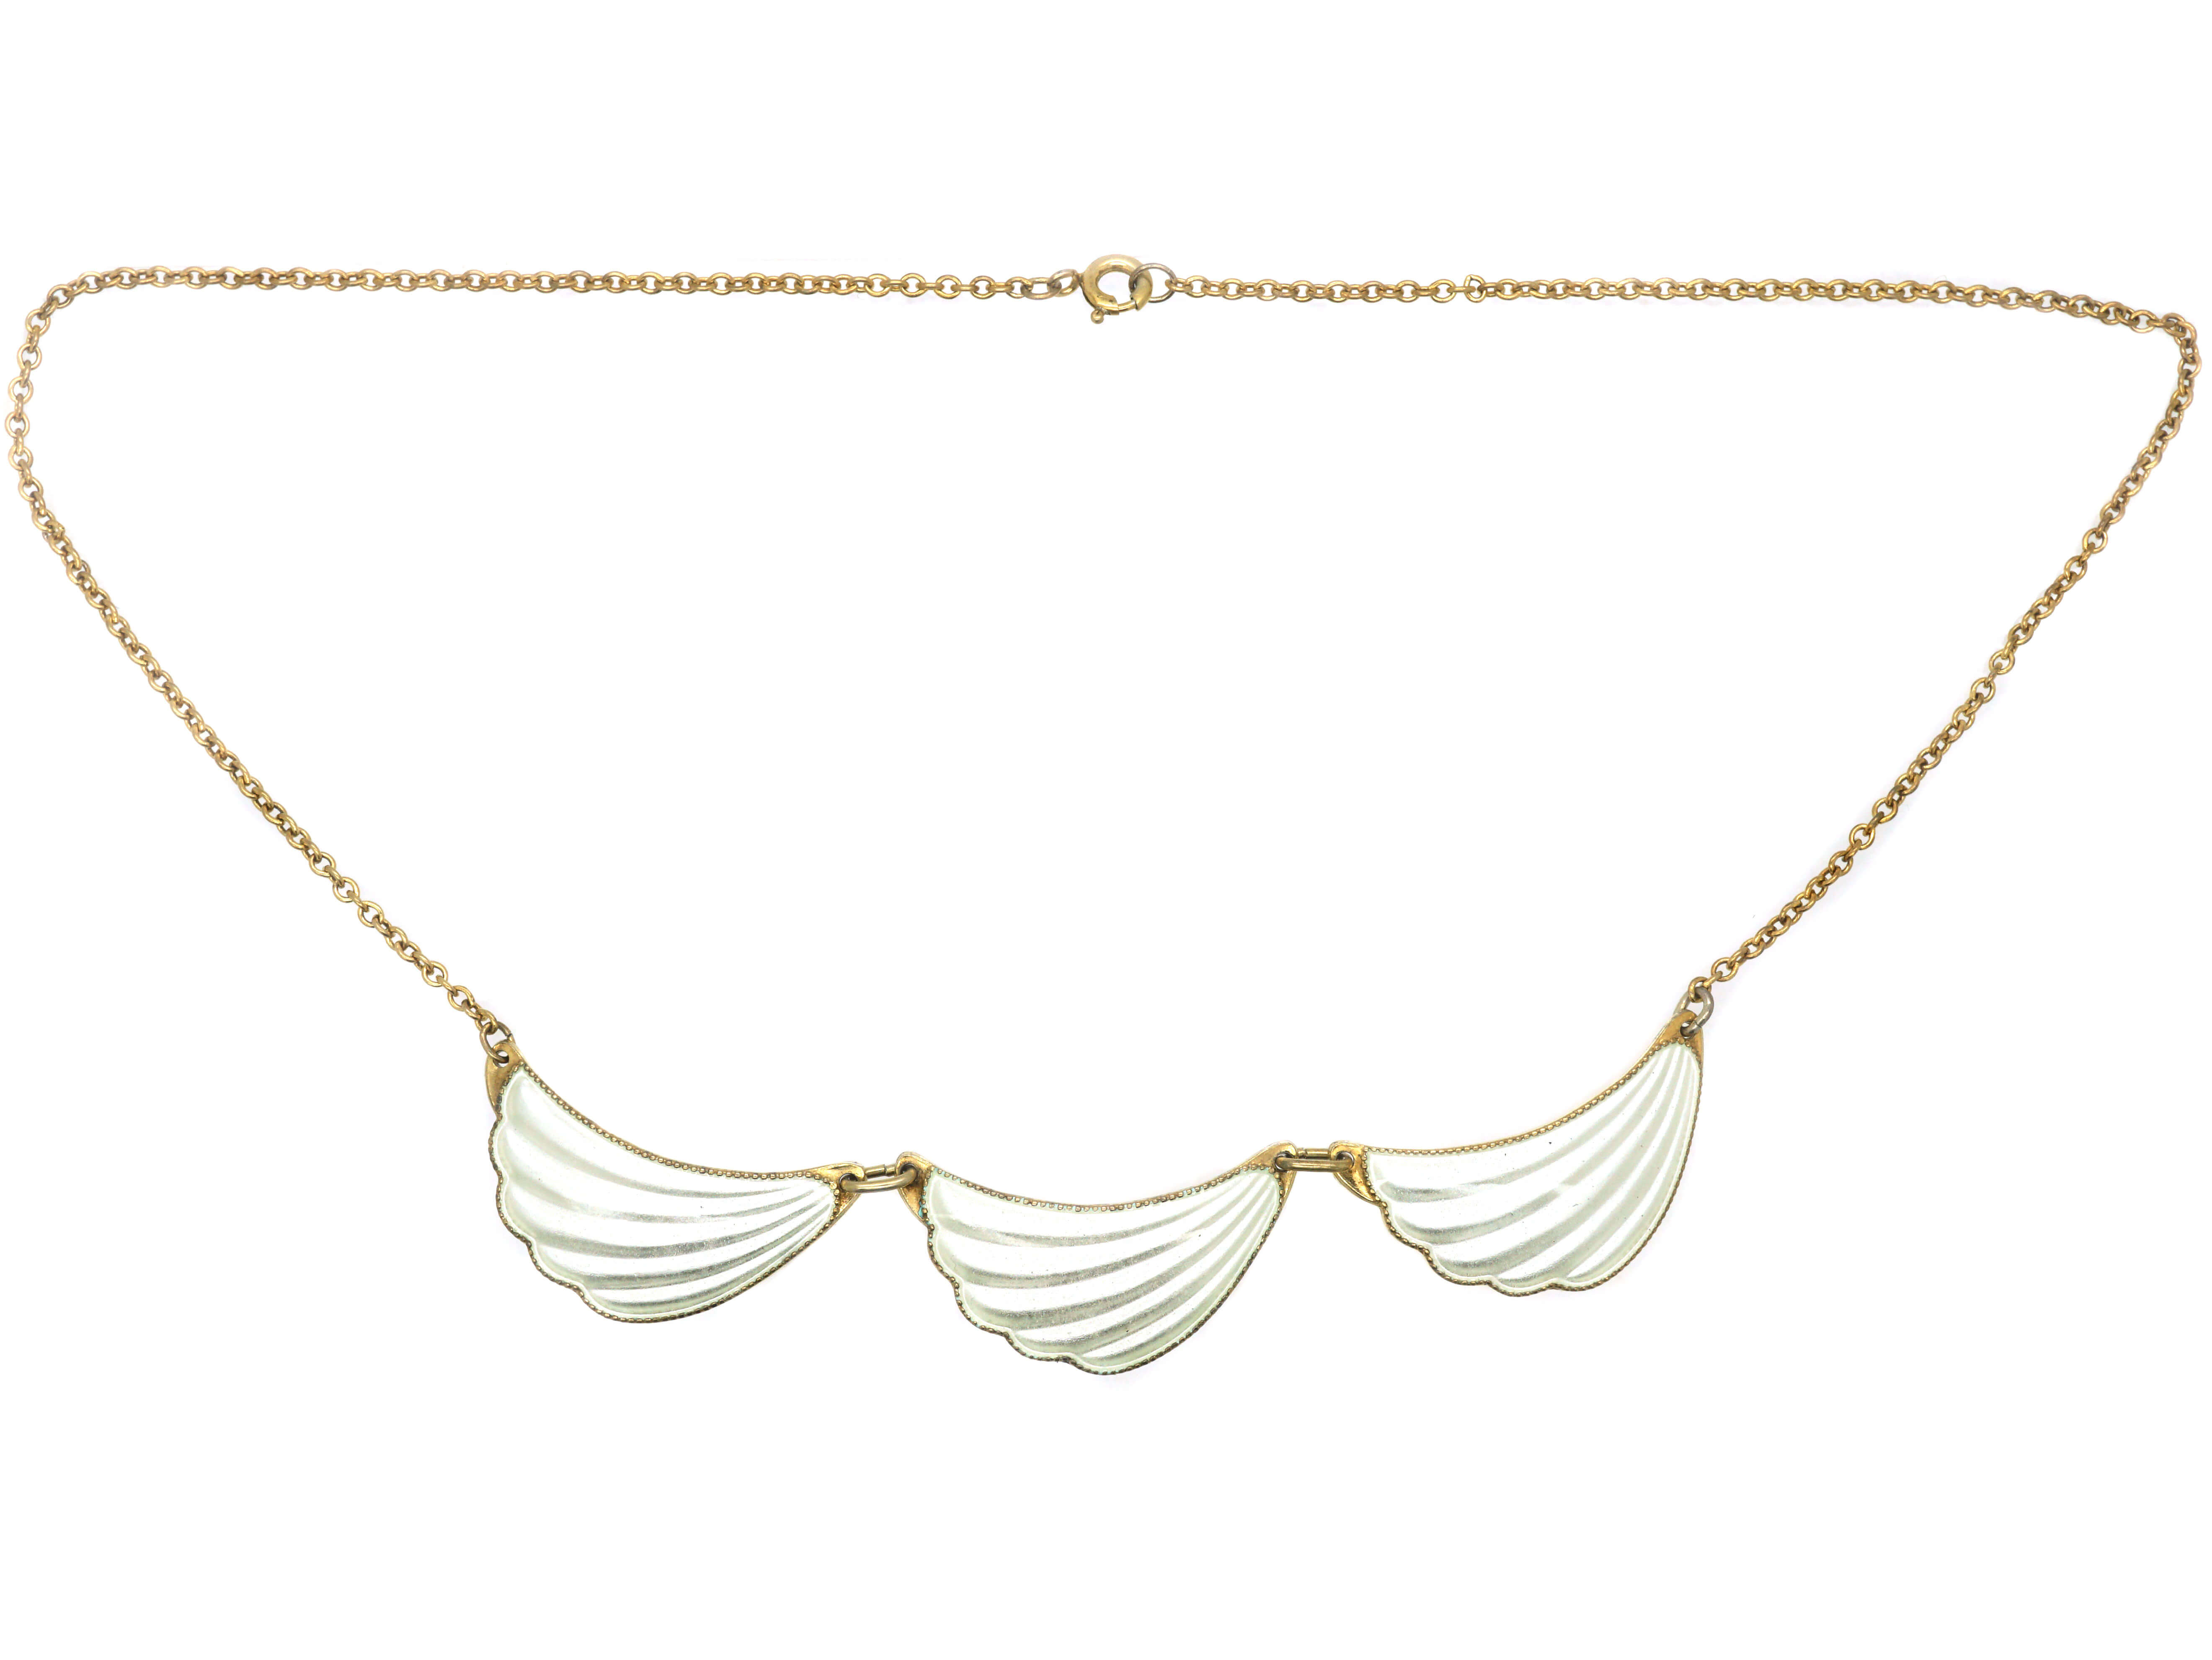 Silver & White Enamel Three Wave Necklace by Elvic & Company